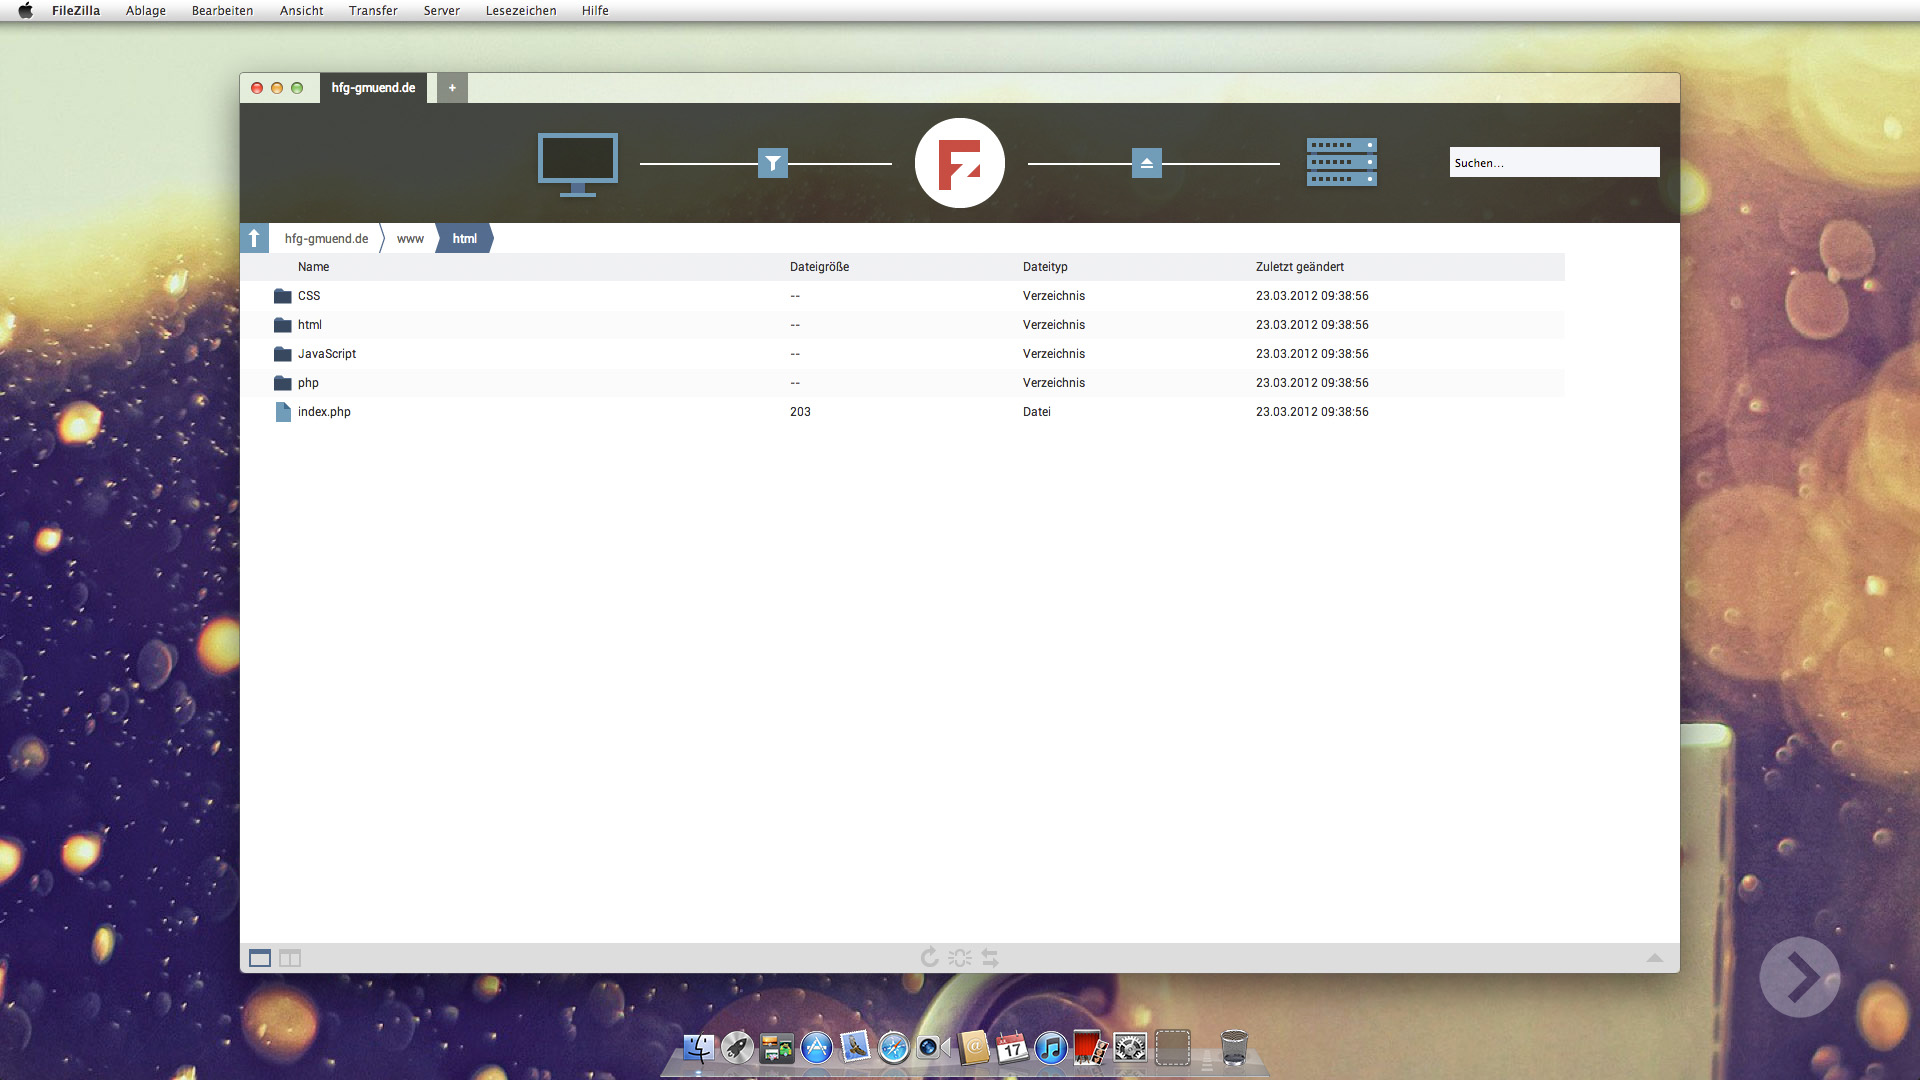 Filezilla Redesign